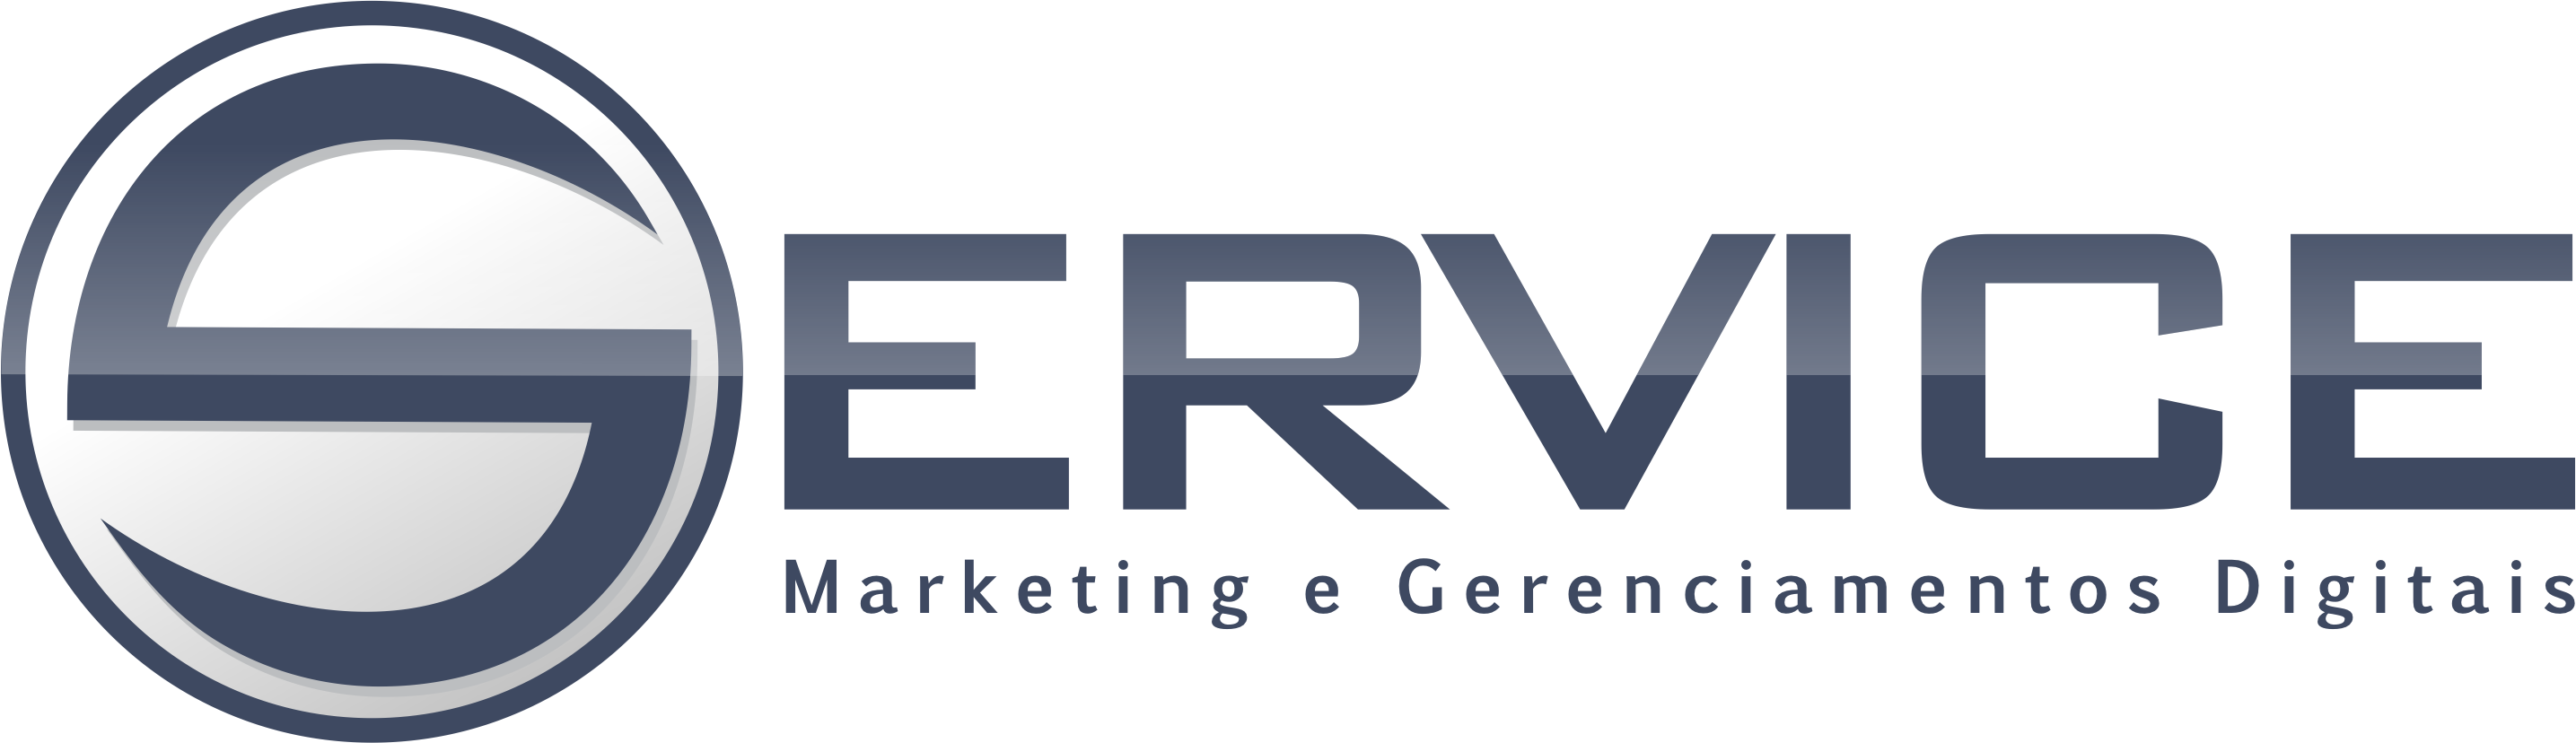 Service Marketing e Gerenciamentos Digitais Logo